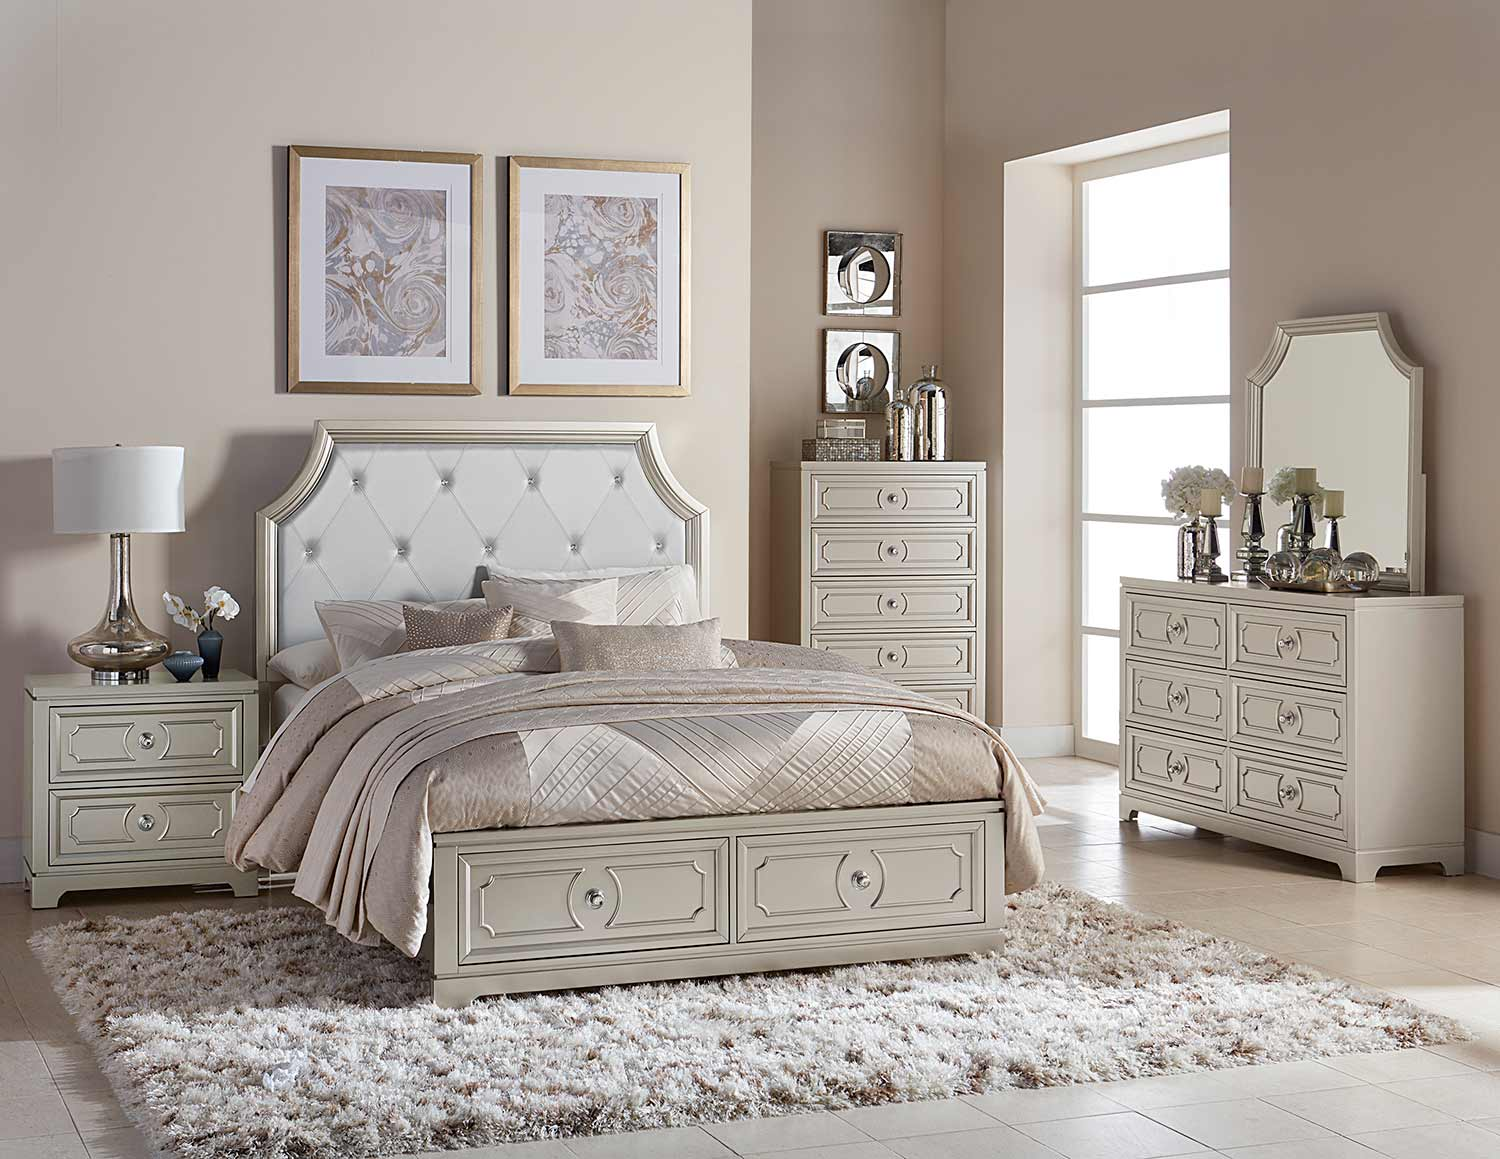 Homelegance Libretto Platform Bedroom Set - Silver - Light Gray Bi-Cast Vinyl